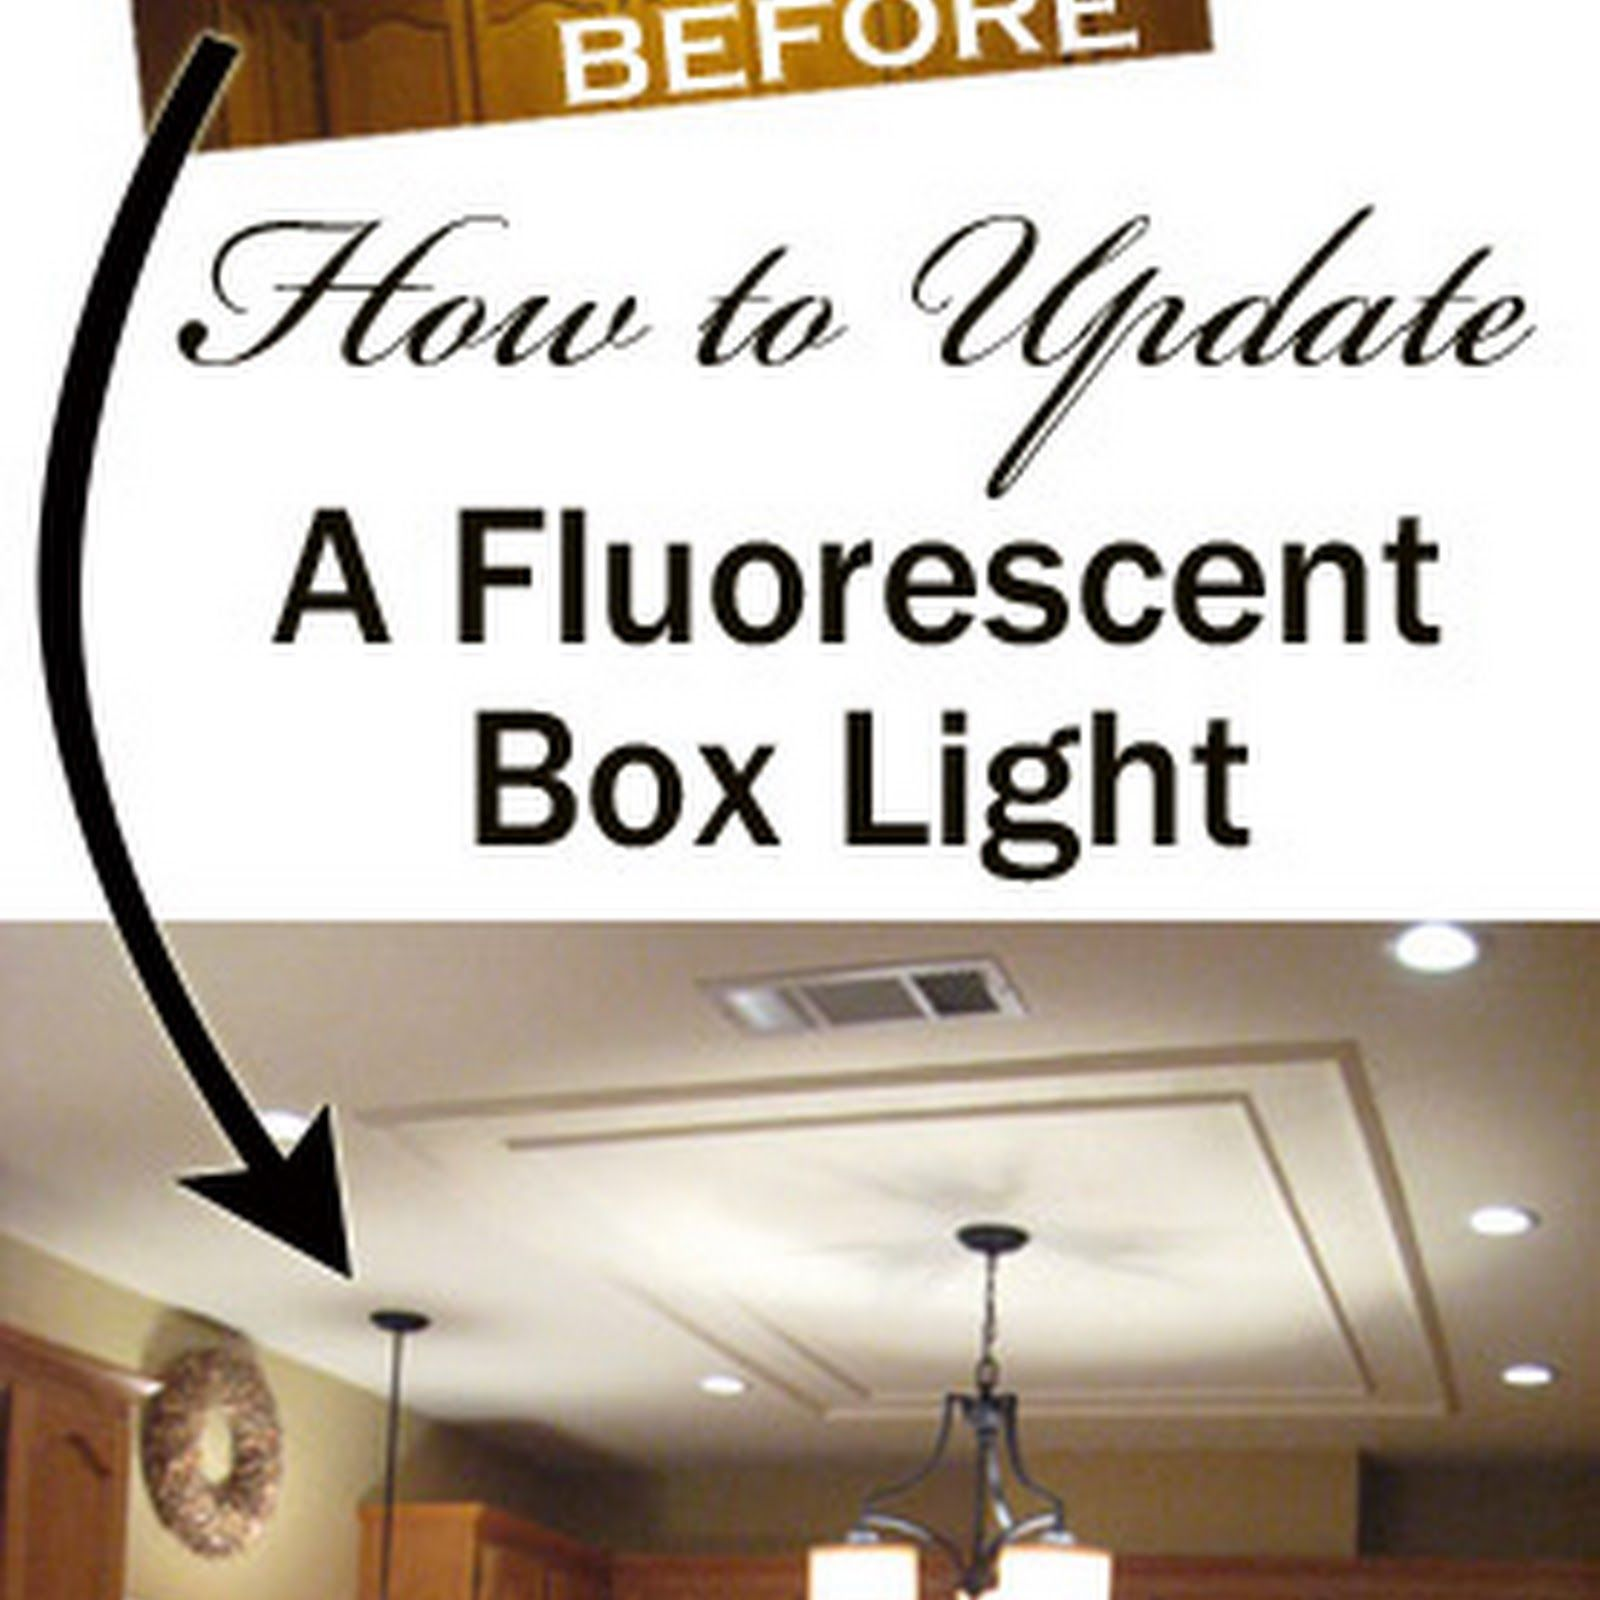 Fluorescent Kitchen Light Fixtures A Great Idea For Updating The Ugly Fluorescent Light Box Without